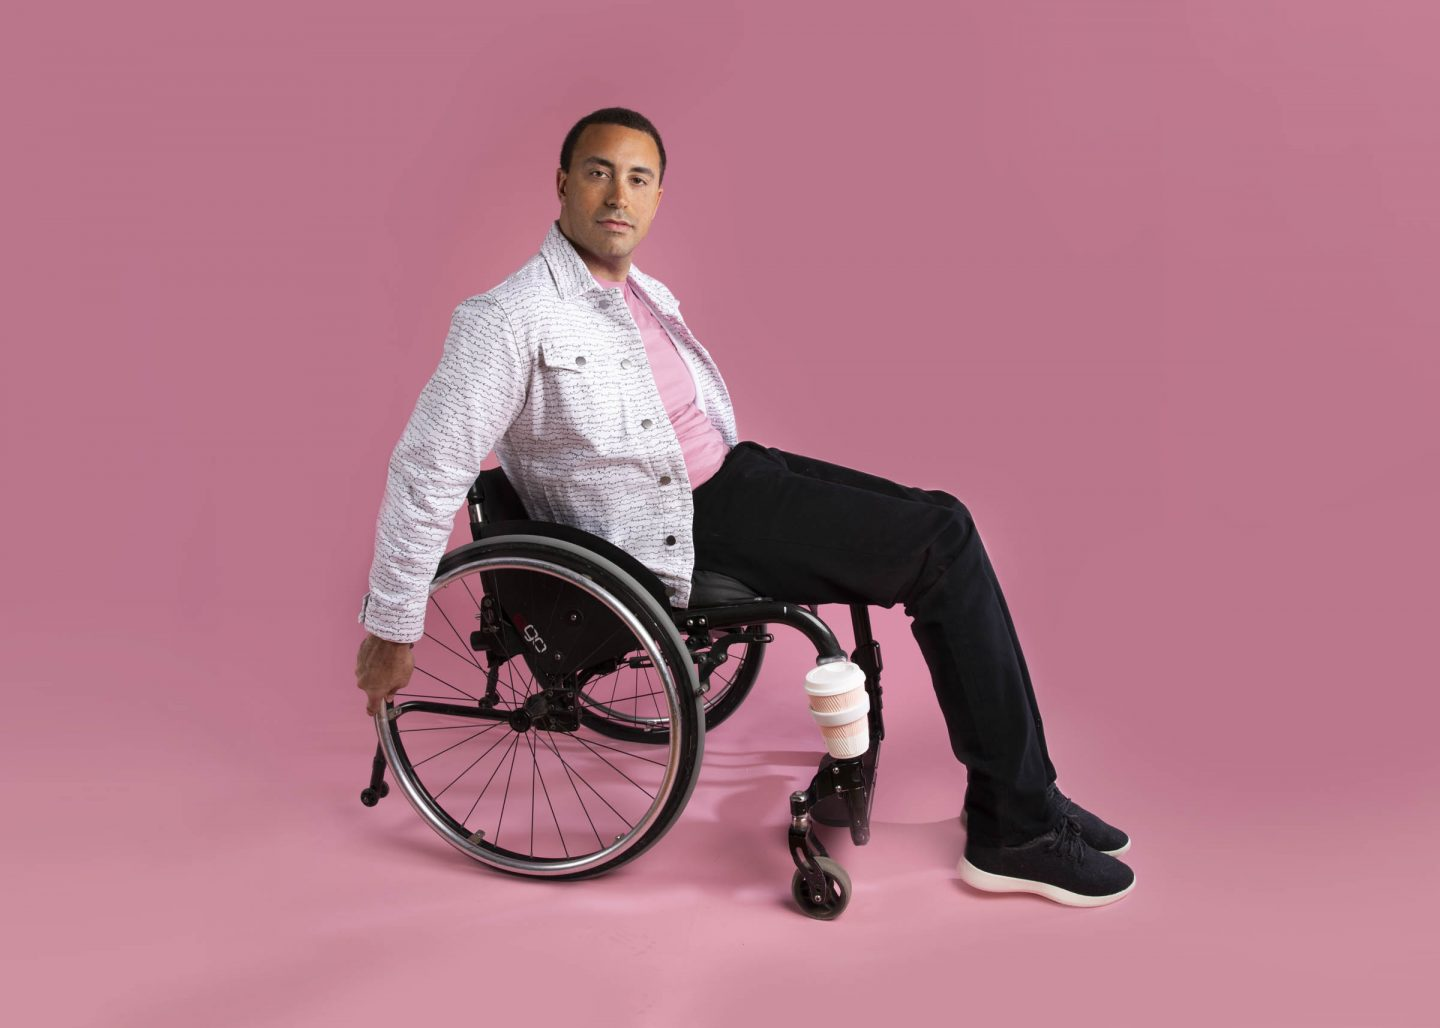 The new brand aims to create beautiful and functional products for people who use wheelchairs